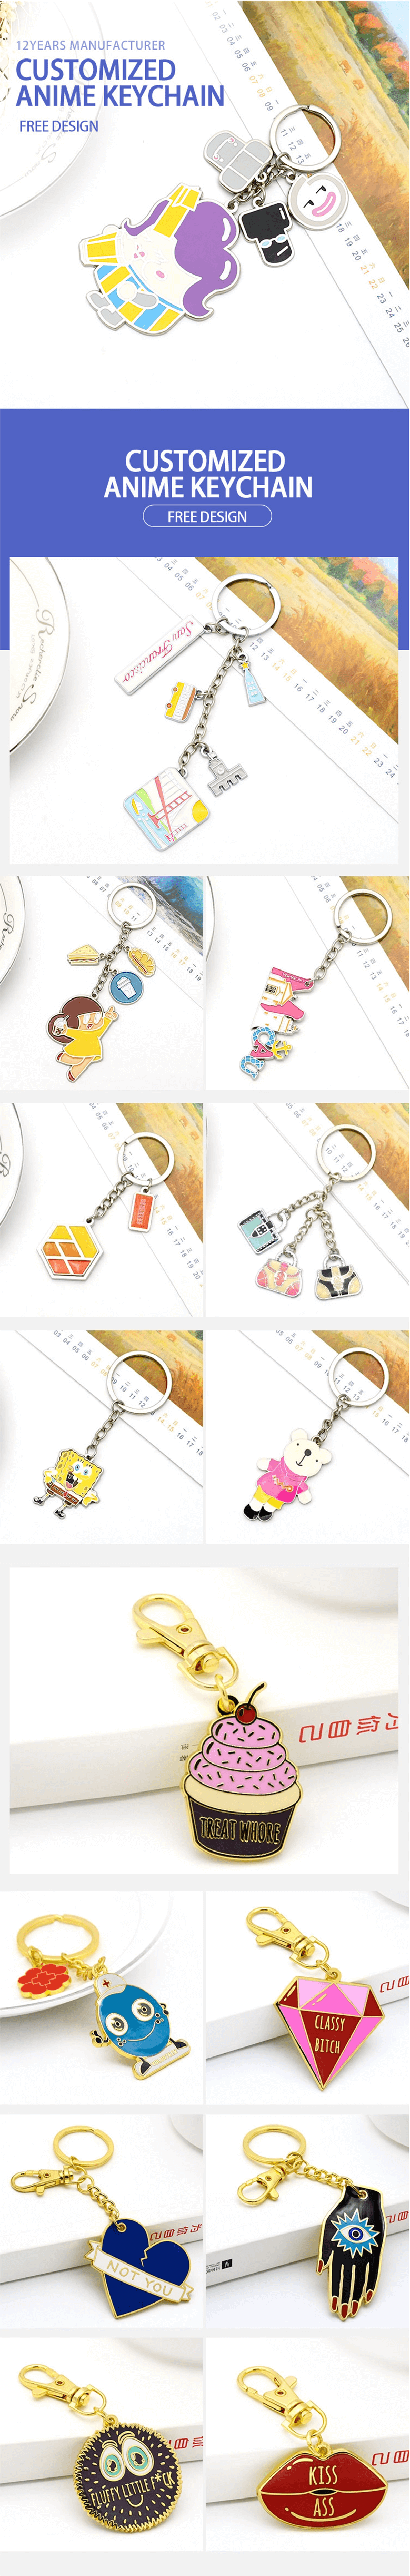 custom personalized anime keychains promotinal keyrings low MOQ wholesale